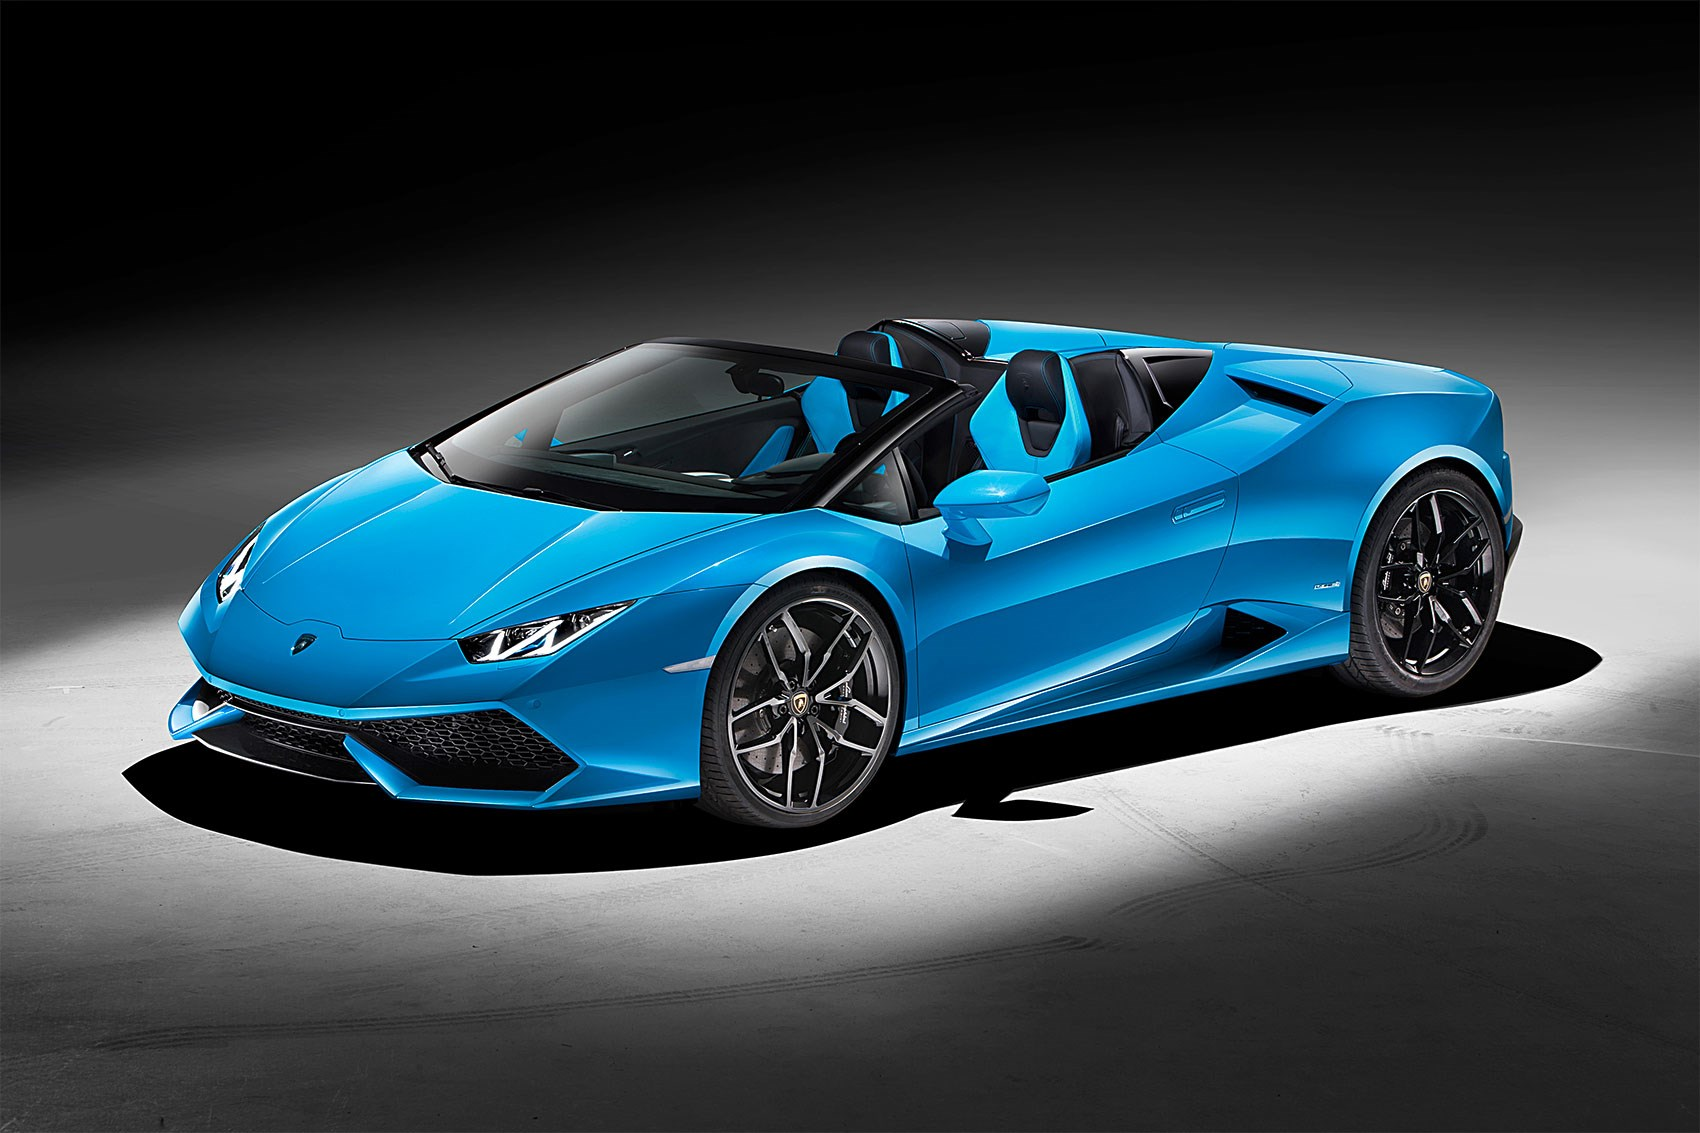 new car debrief: lamborghini huracan spyder, car+ october 2015 | car